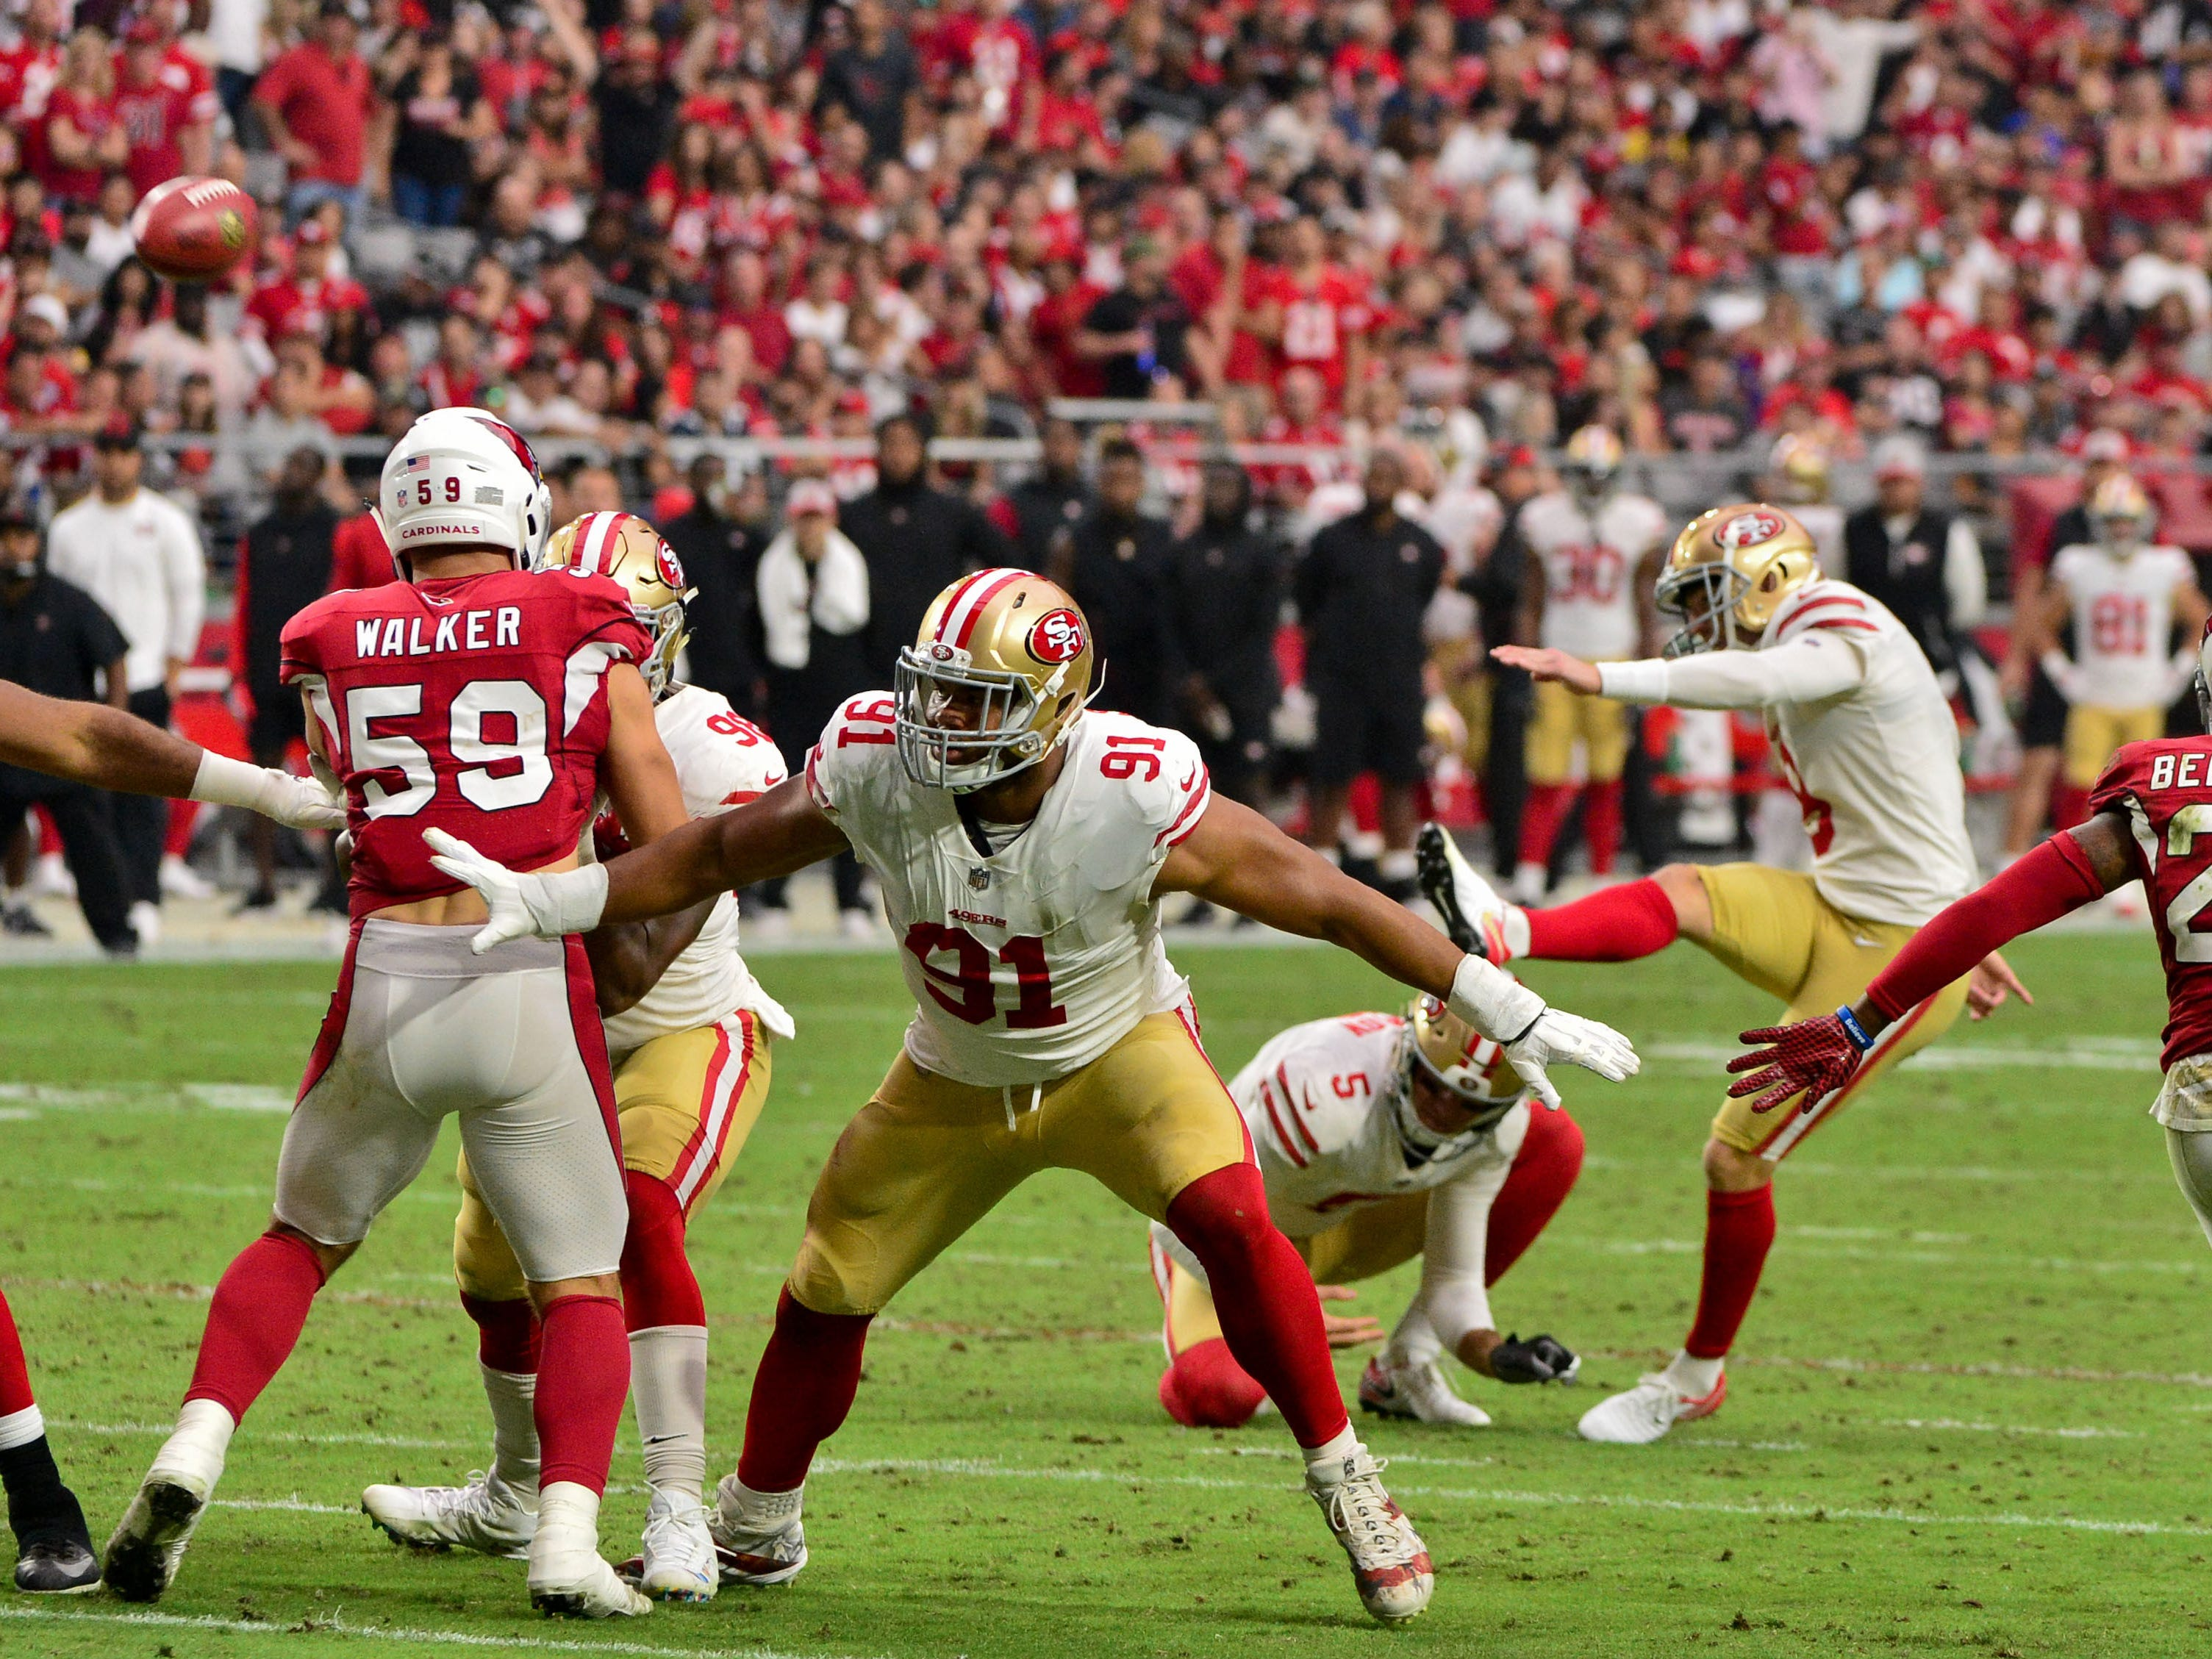 Oct 28, 2018; Glendale, AZ, USA; San Francisco 49ers place kicker Robbie Gould (9) kicks a field goal during the first half against the Arizona Cardinals at State Farm Stadium.